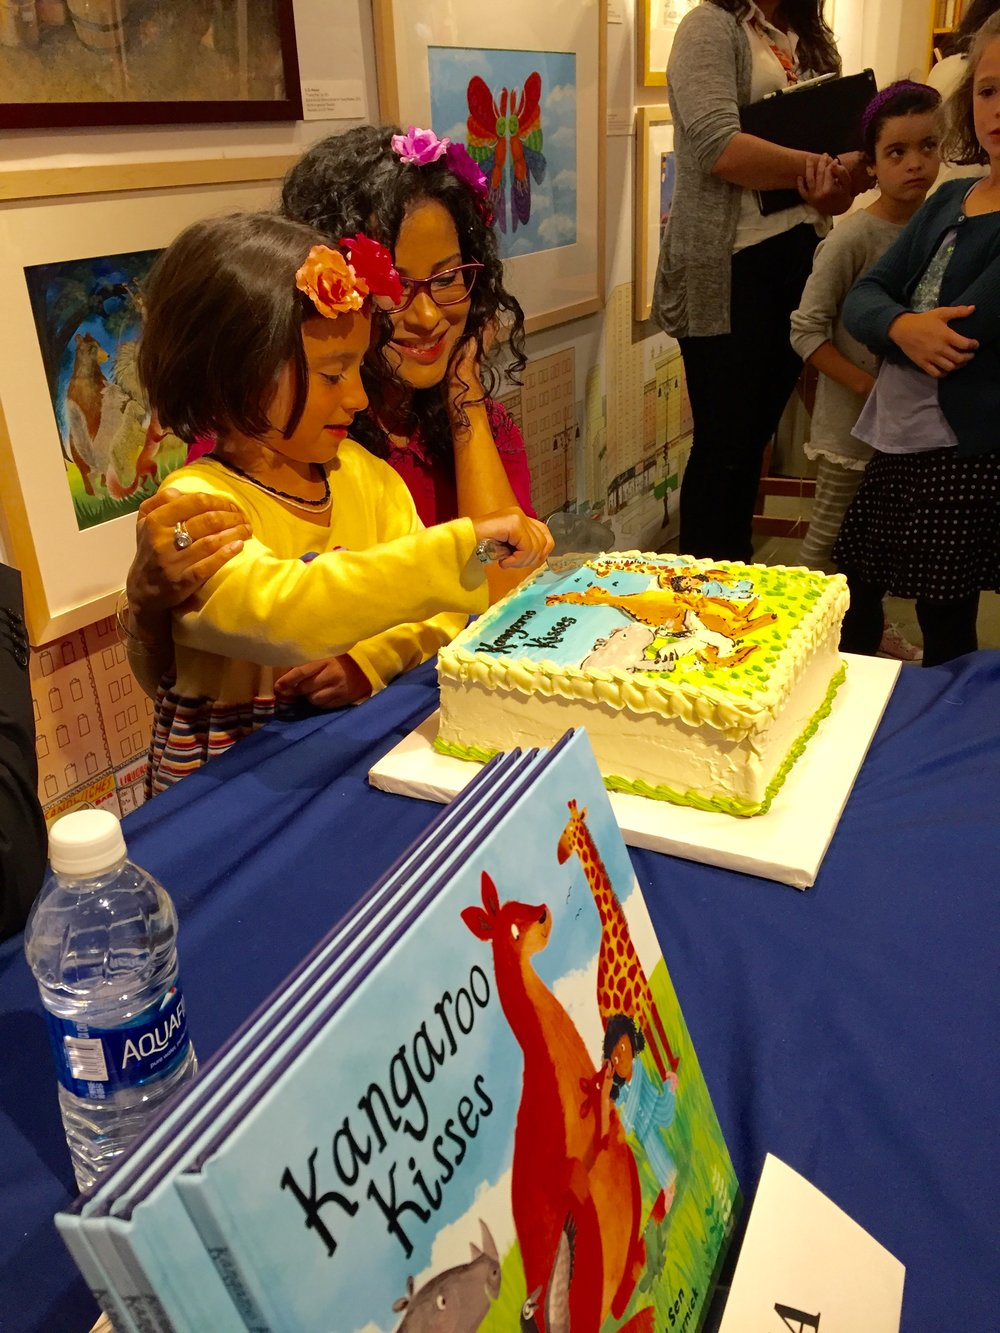 Sulakshana takes charge of the cake, Books of Wonder, September 25, 2016